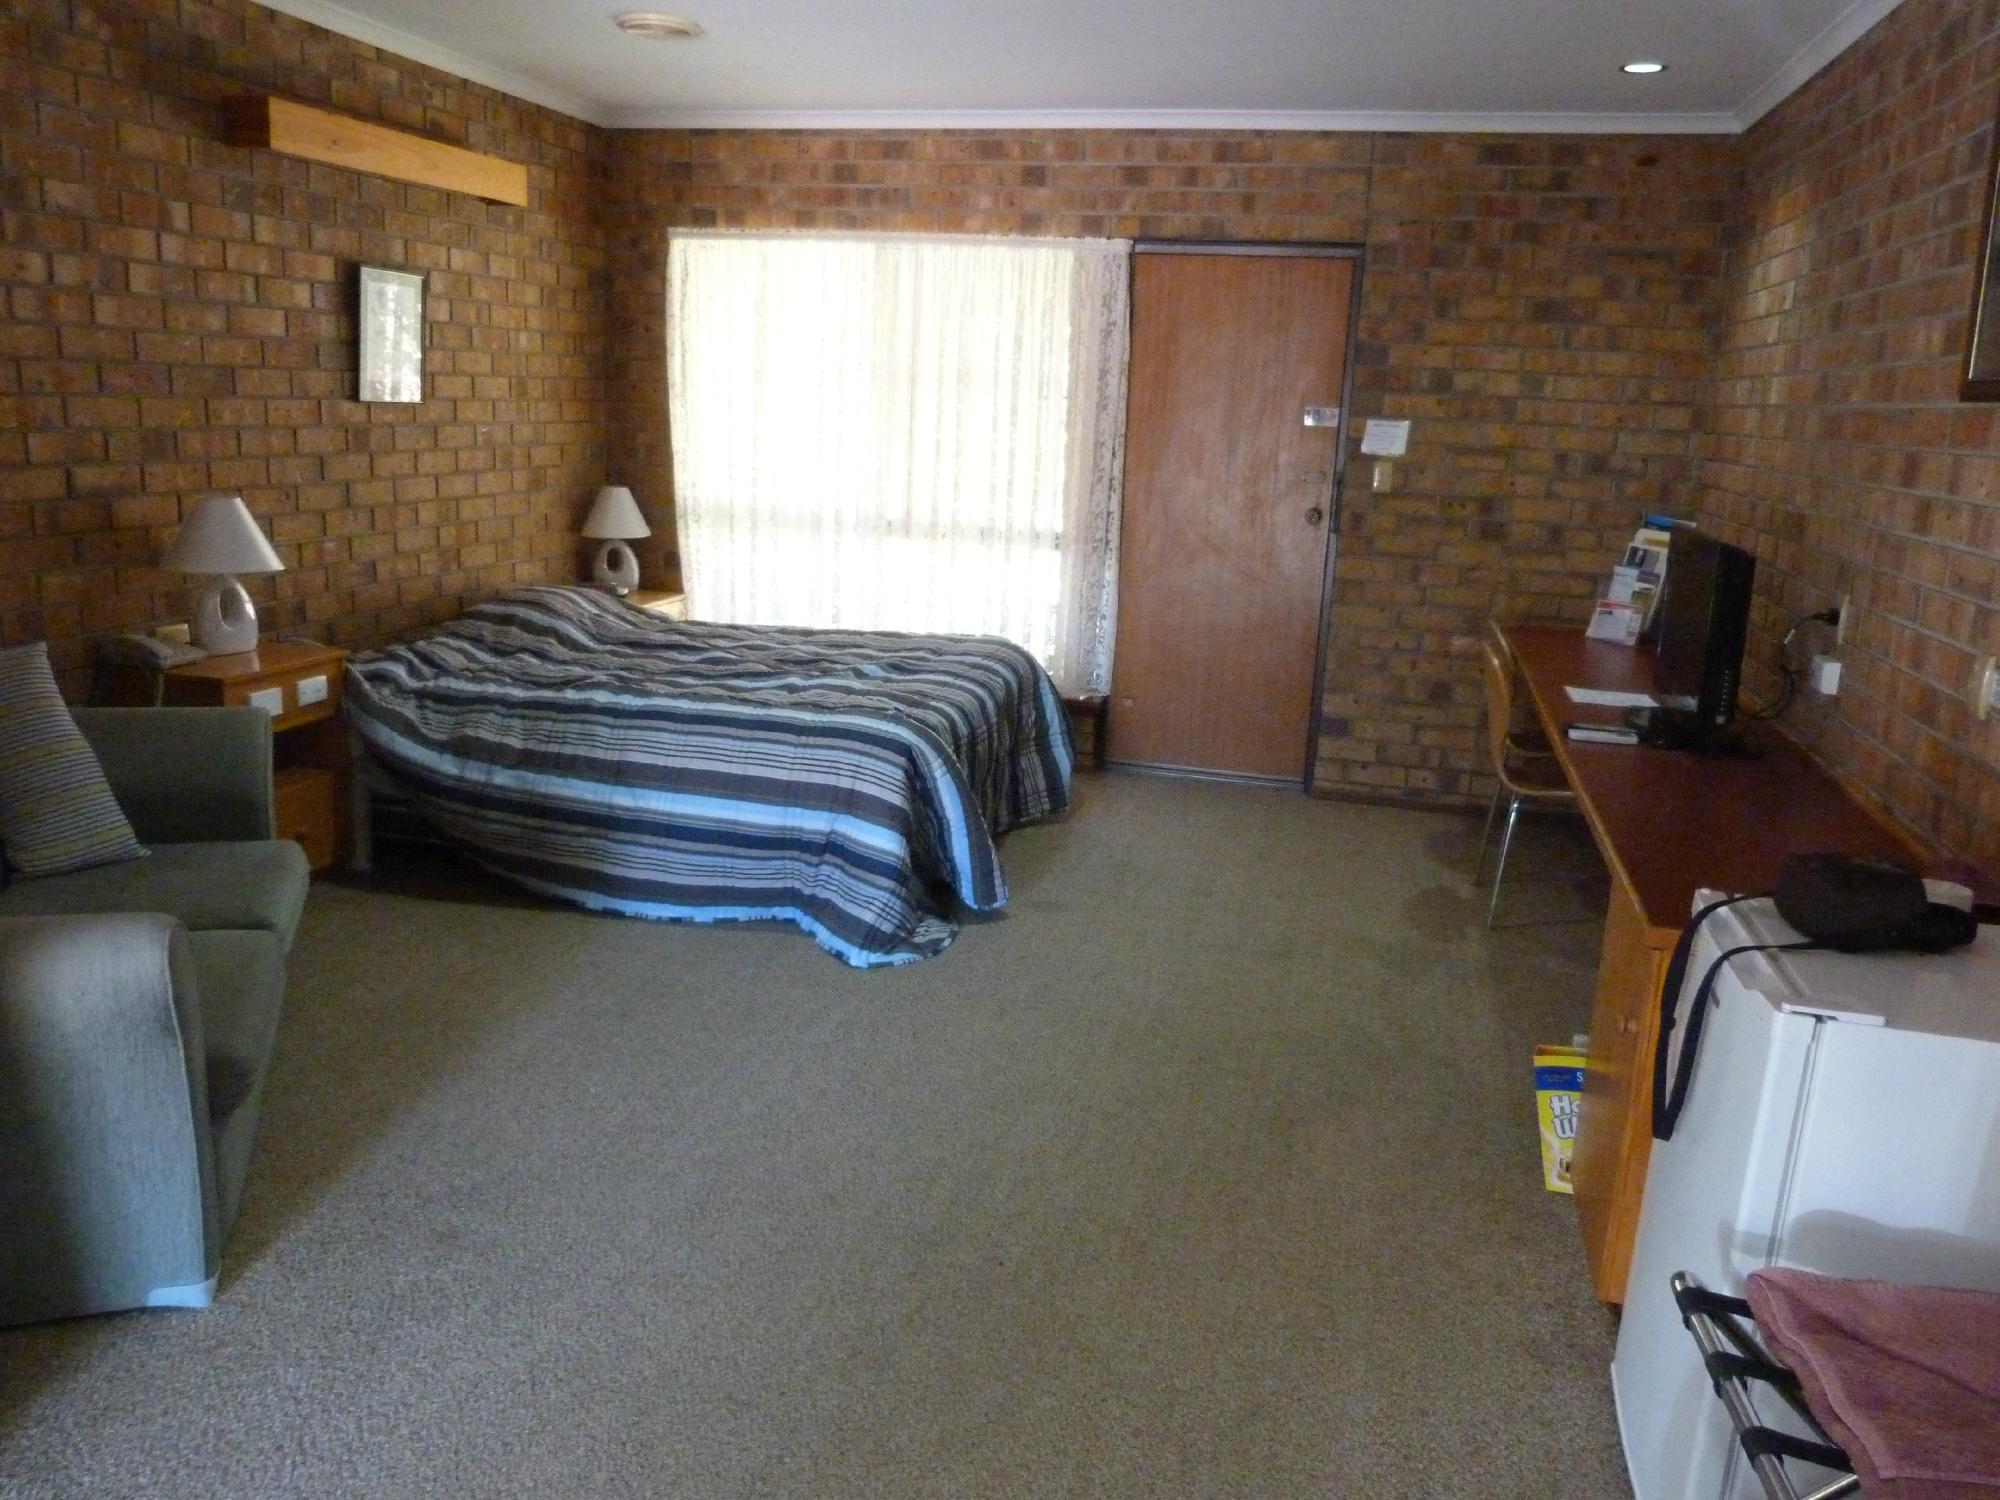 Kadina Australia  city images : Kadina Gateway Motor Inn: Motel Reviews, Prices & Photos TripAdvisor